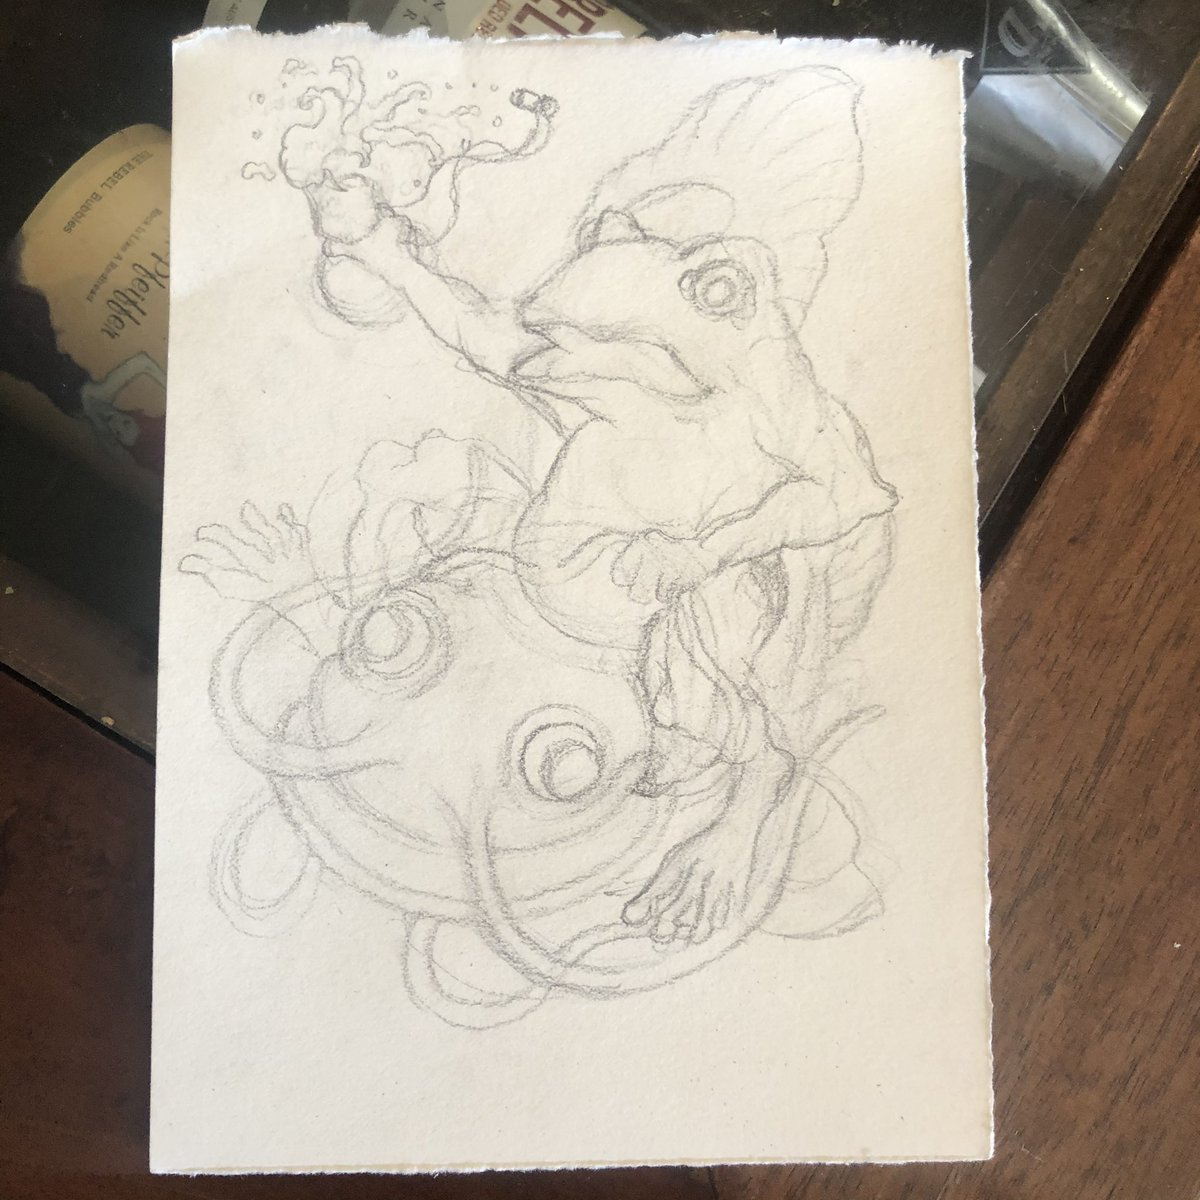 Sketching up a Namazu with toad piece.   #melbourneart #melbourneartist #tattoodesign #pencilsketch #sketch #pencilart #drawing #illustration #japanesestyle pic.twitter.com/6Pejt1z7dt